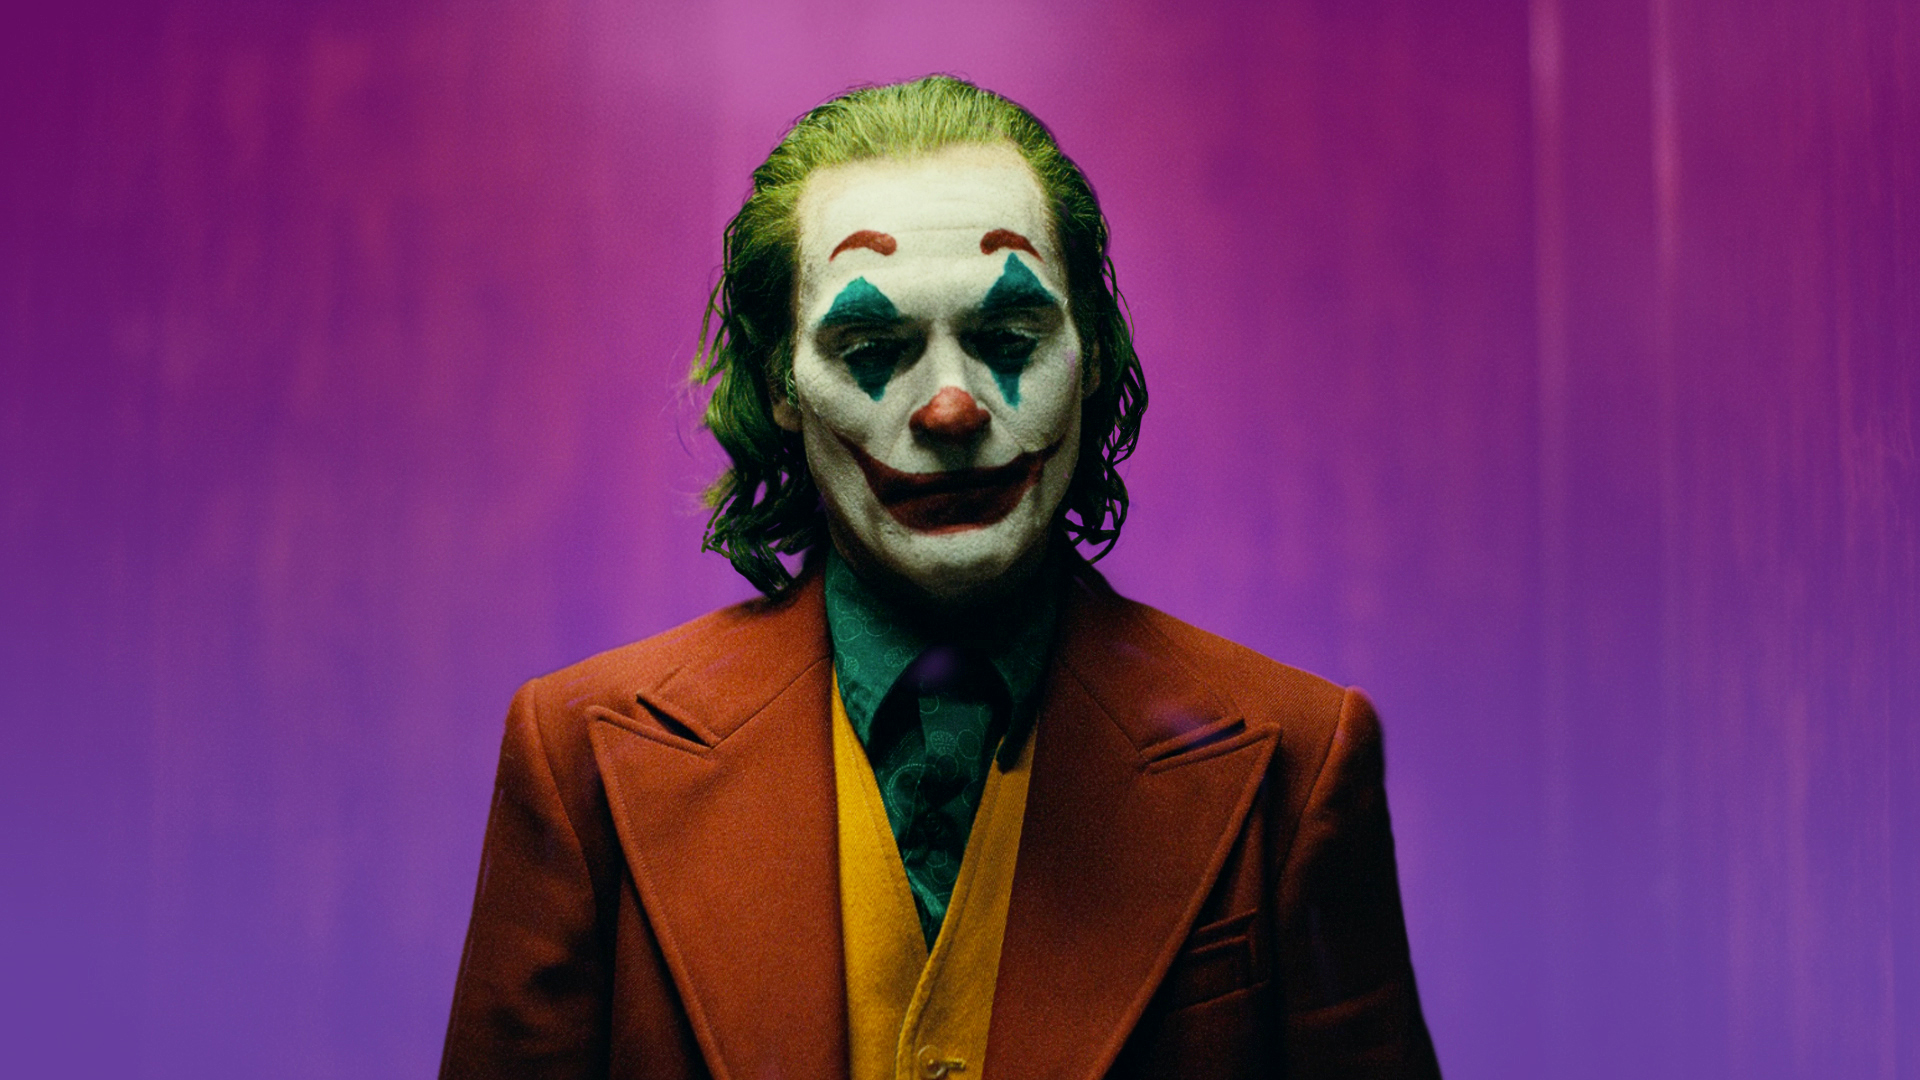 Joker, a man in clown makeup and a red suit with a green shirt and orange vest